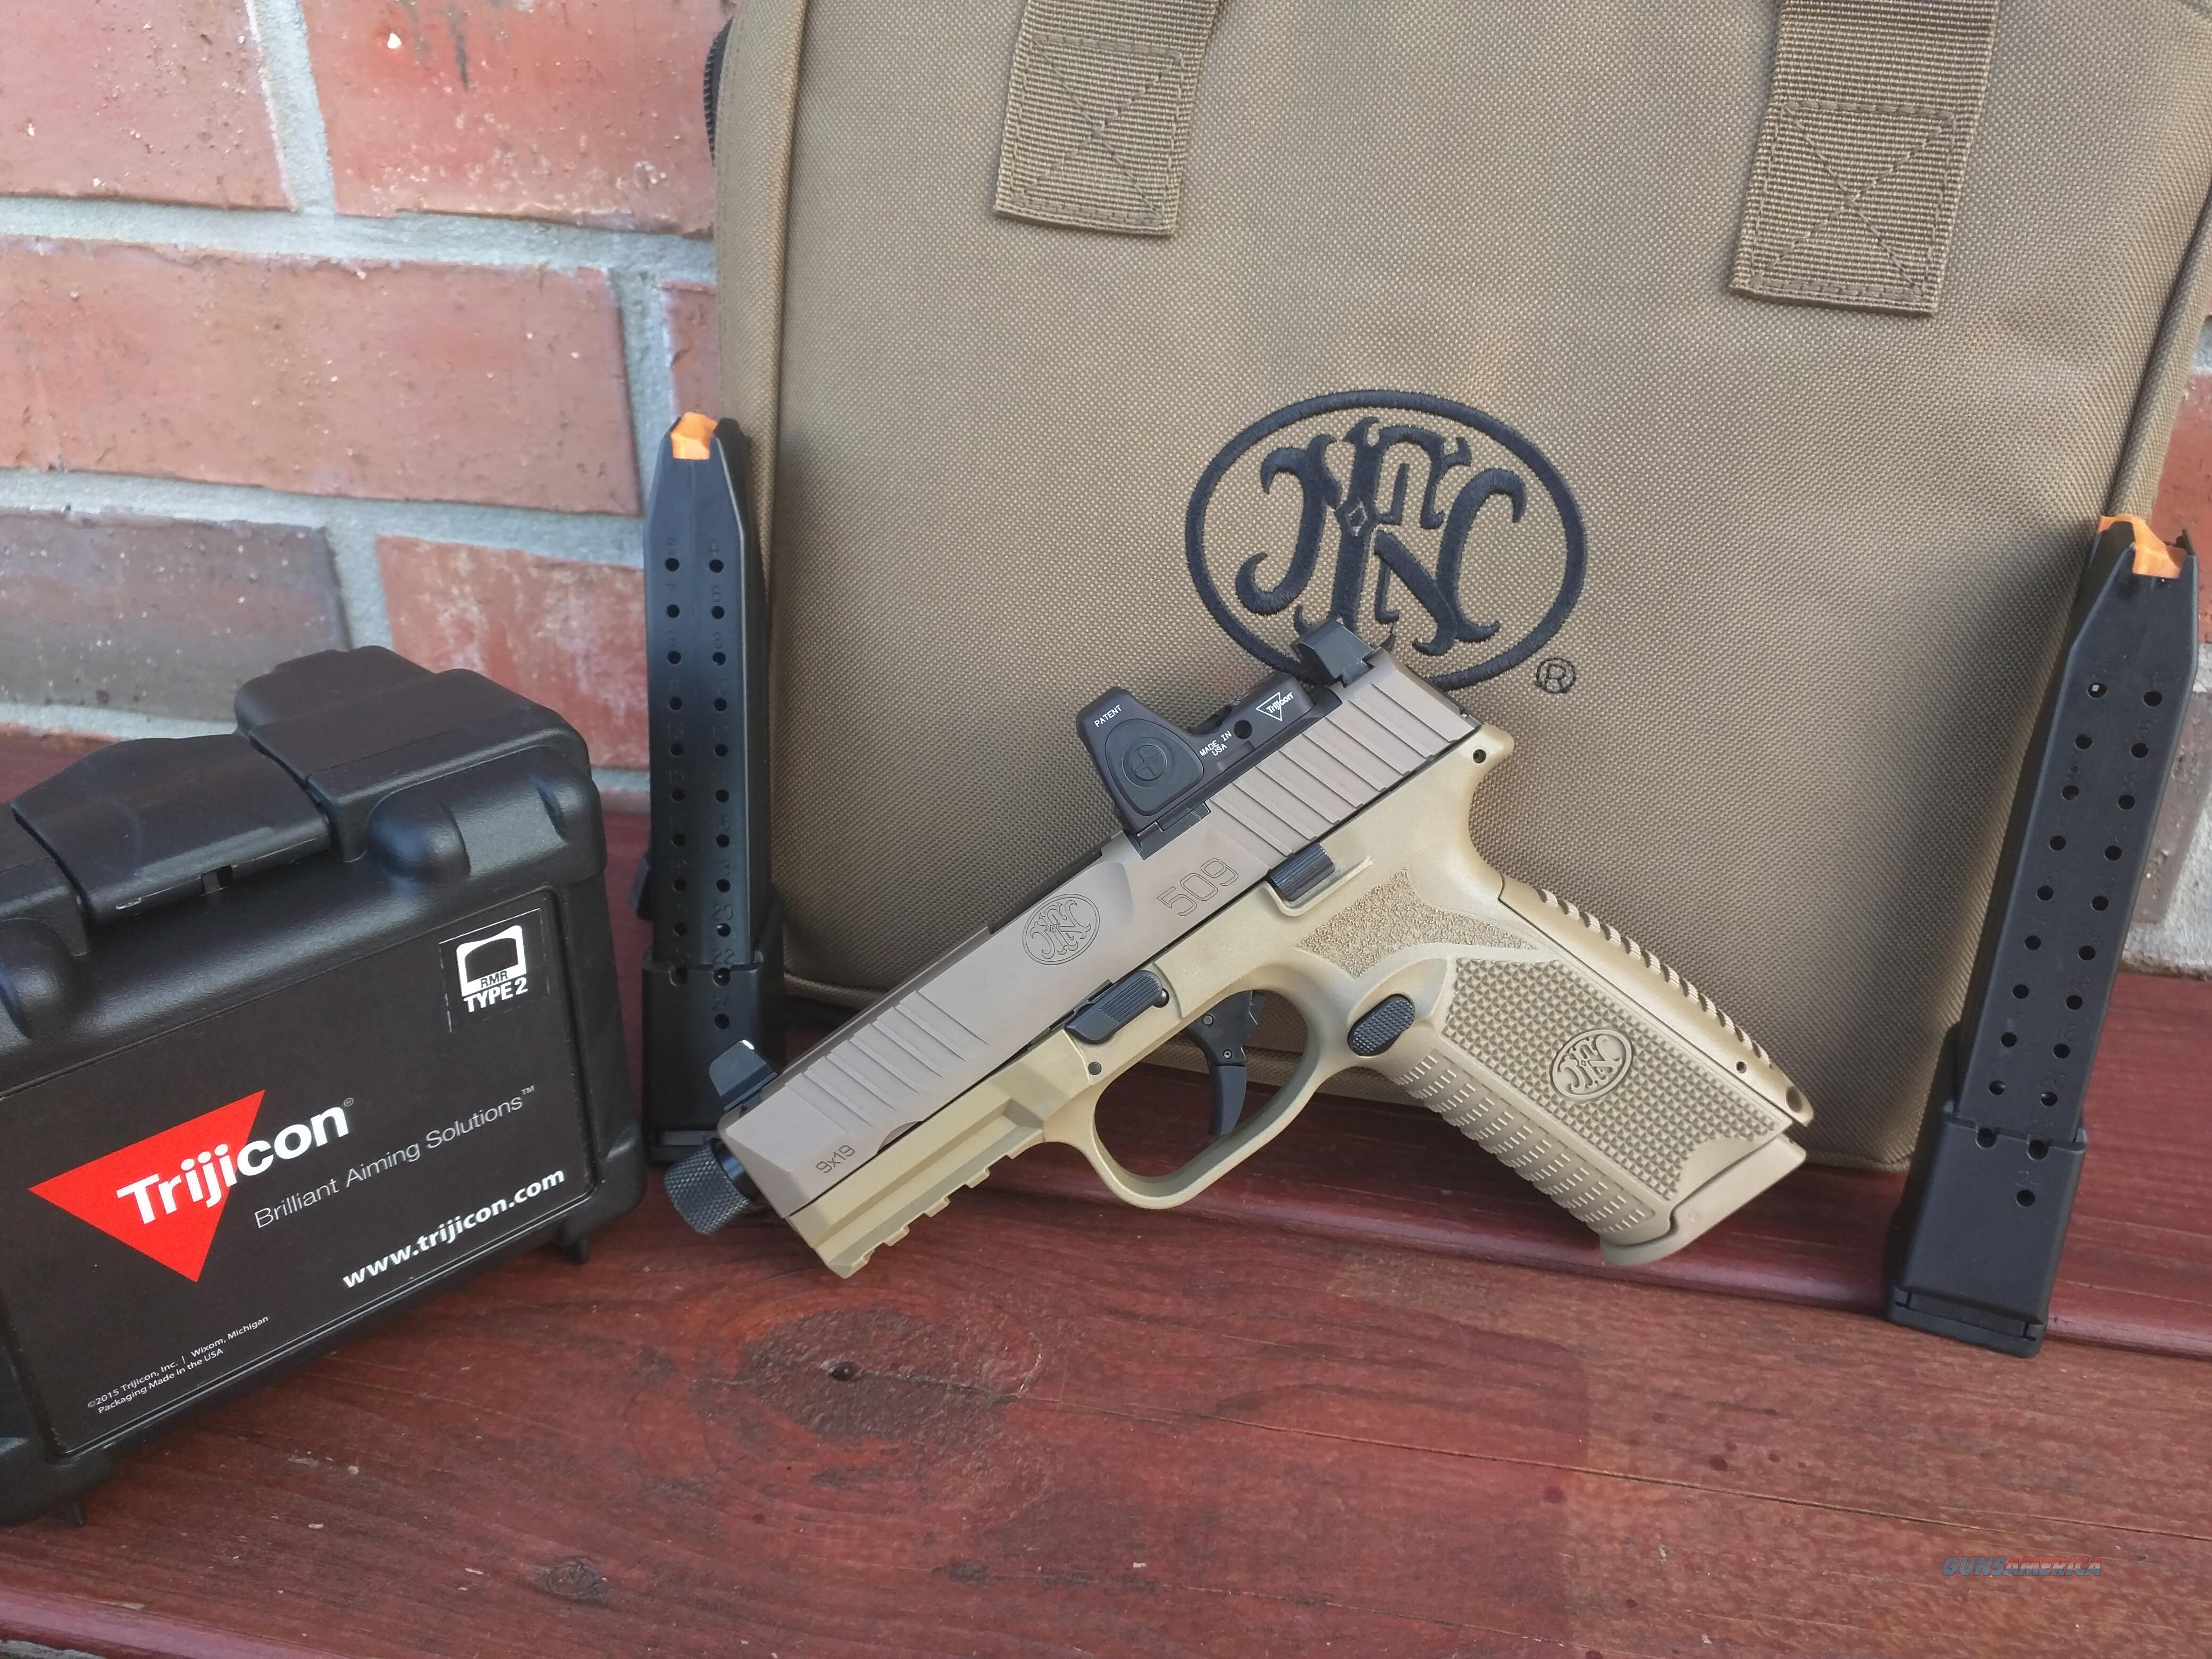 """FN 509 Tactical 4.5"""" 9mm, Trijicon RMR type 2 Adj LED 3.25 MOA Red dot, 3 mags (1) 17round , (2) 24 round mags, suppressor height night sights, FREE LAYAWAY  Guns > Pistols > FNH - Fabrique Nationale (FN) Pistols > FN 509"""